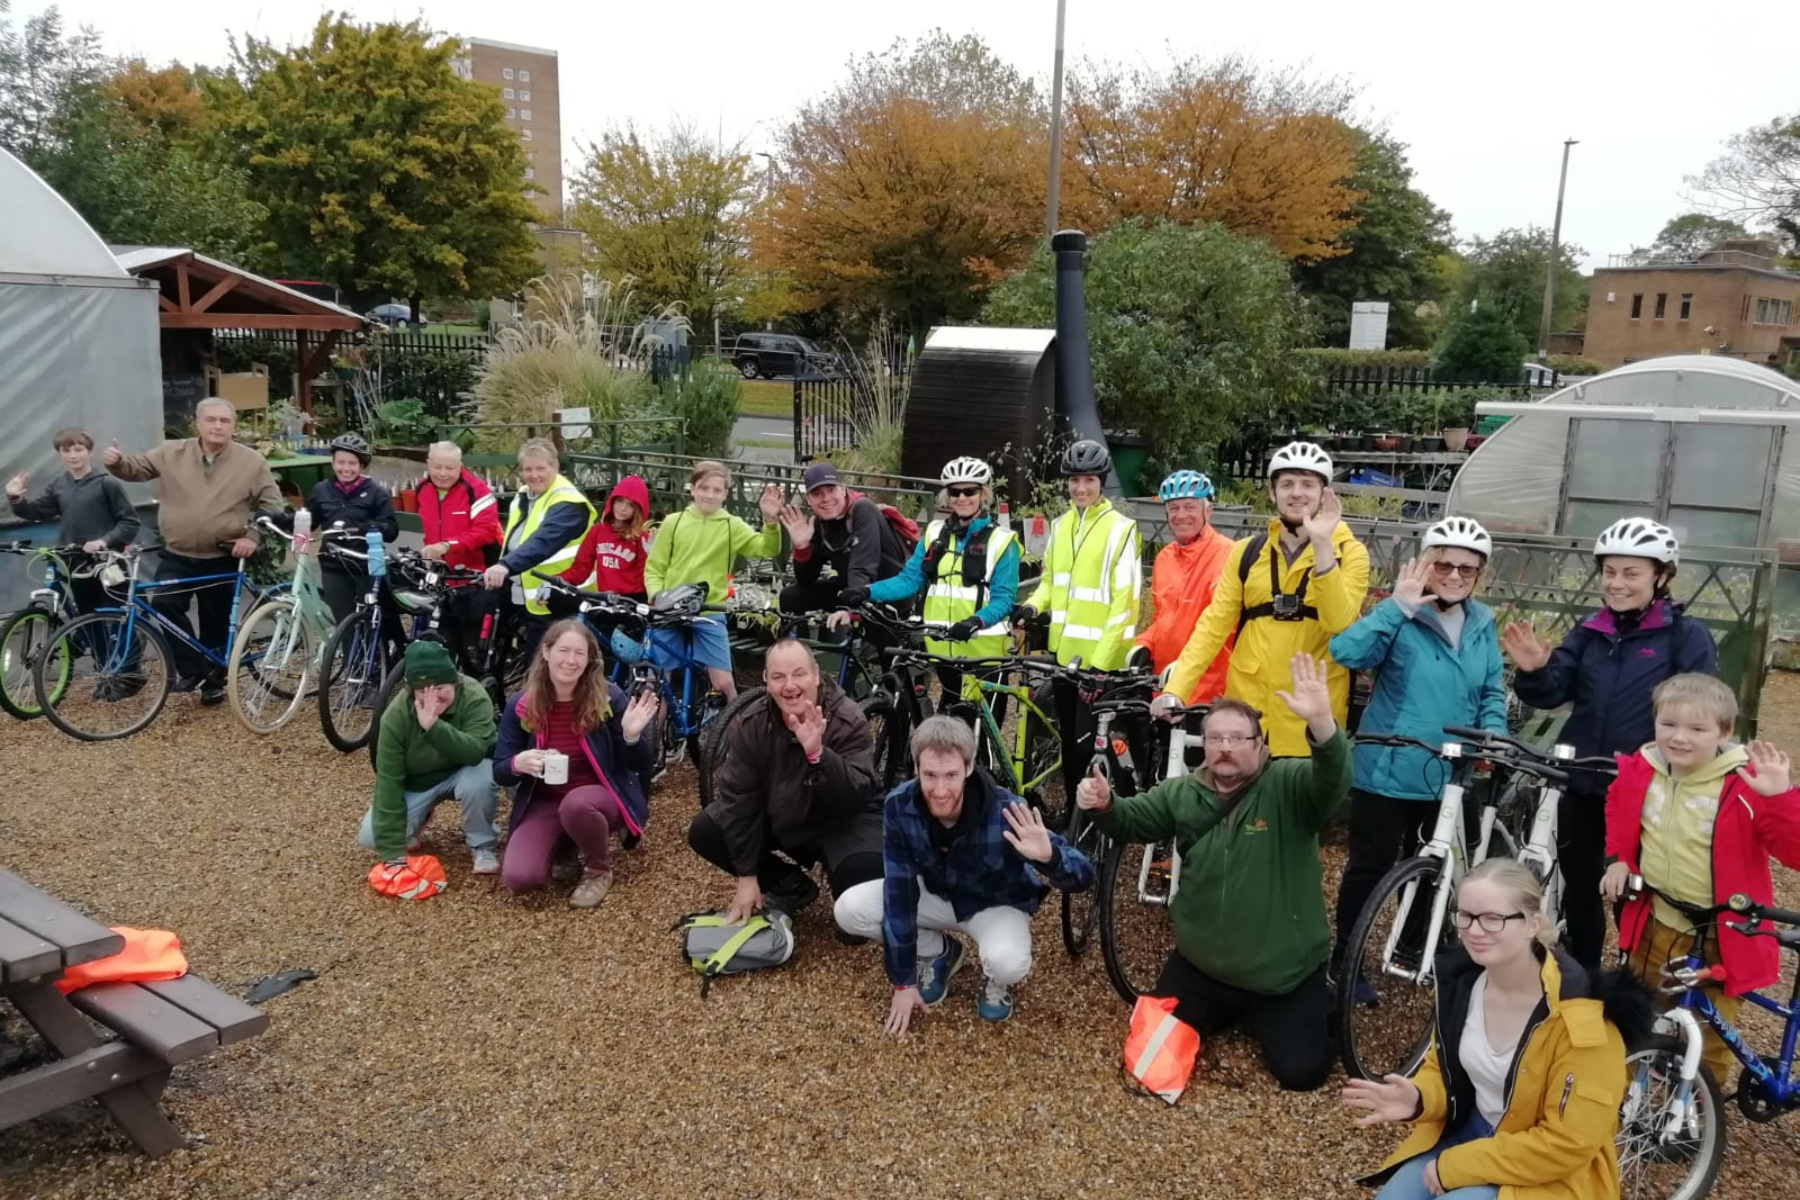 Garden Ride participants give a cheer at Westcliff